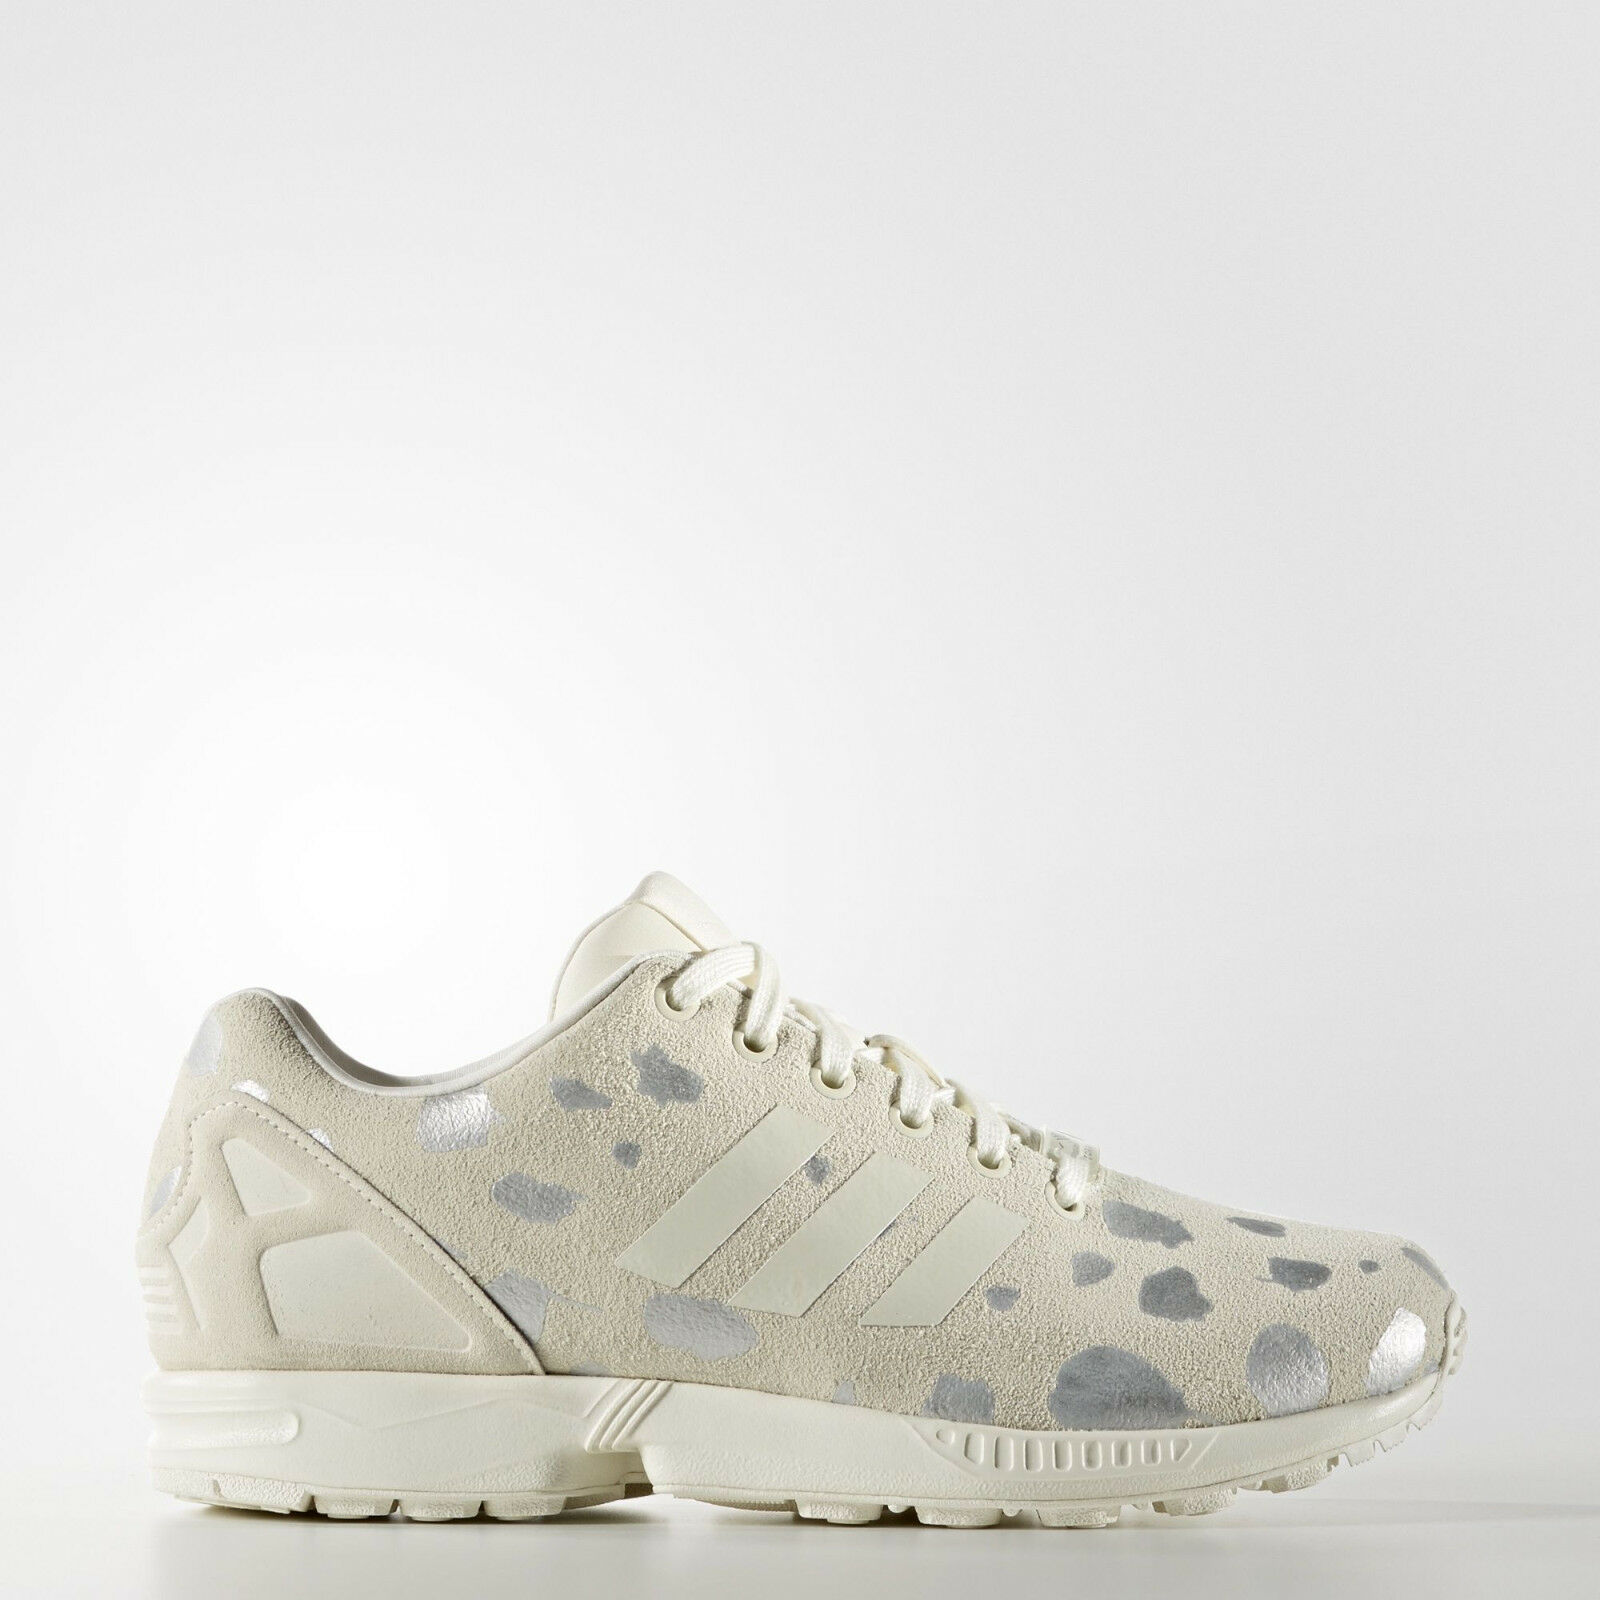 Adidias Originals ZX Flux Metallic Silver Stain 10 S76604 Sizes 4 - 10 Stain Rose Gold d8a581